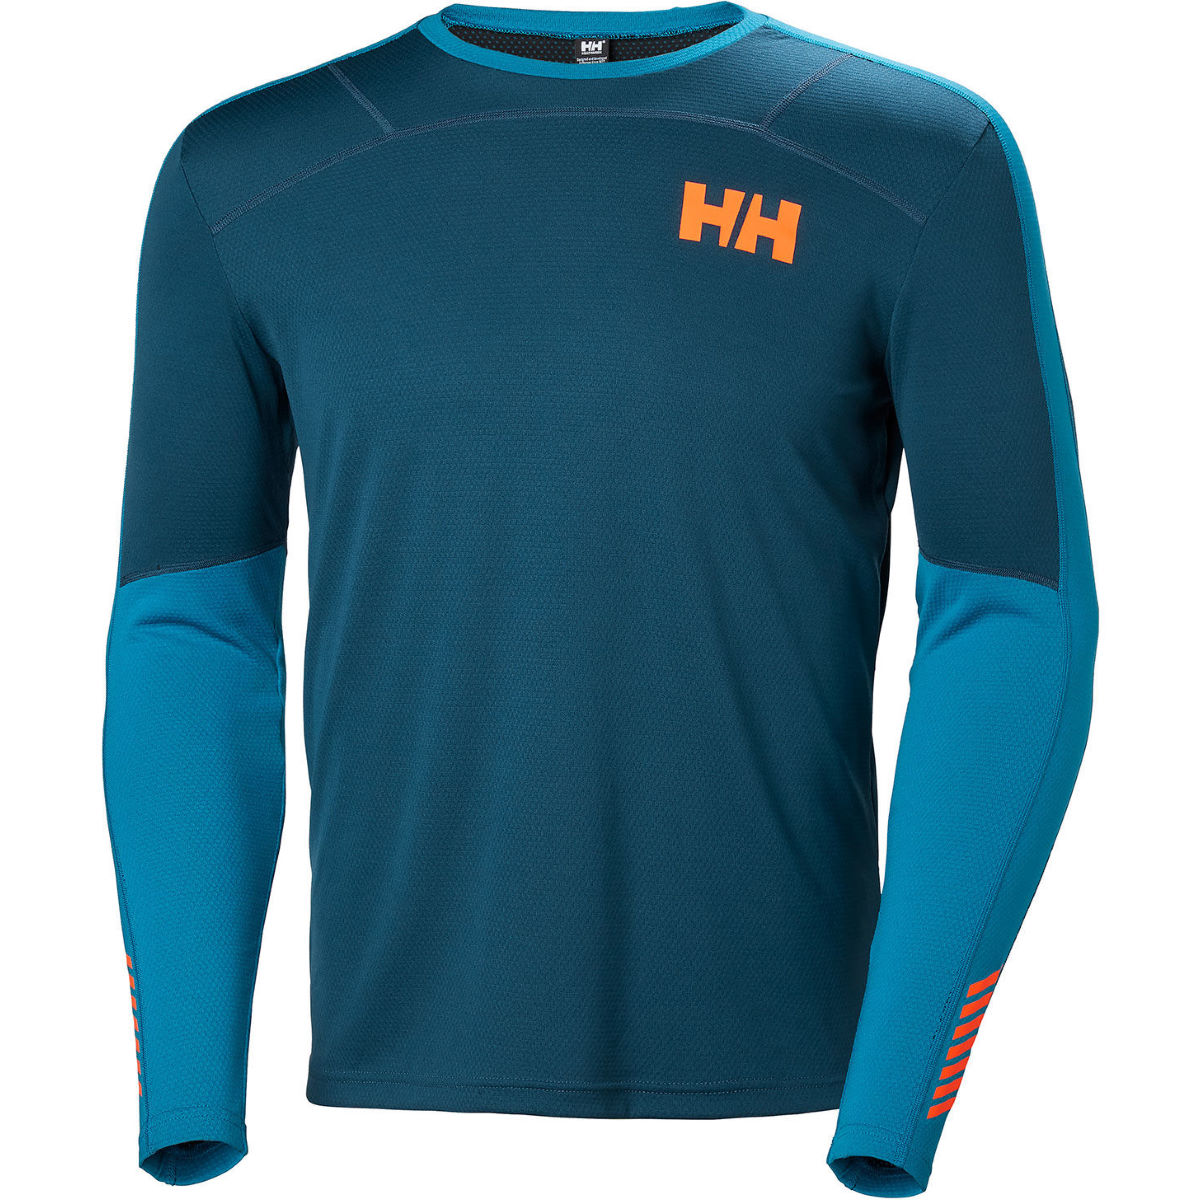 Camiseta interior Helly Hansen Lifa Active - Camisetas interiores